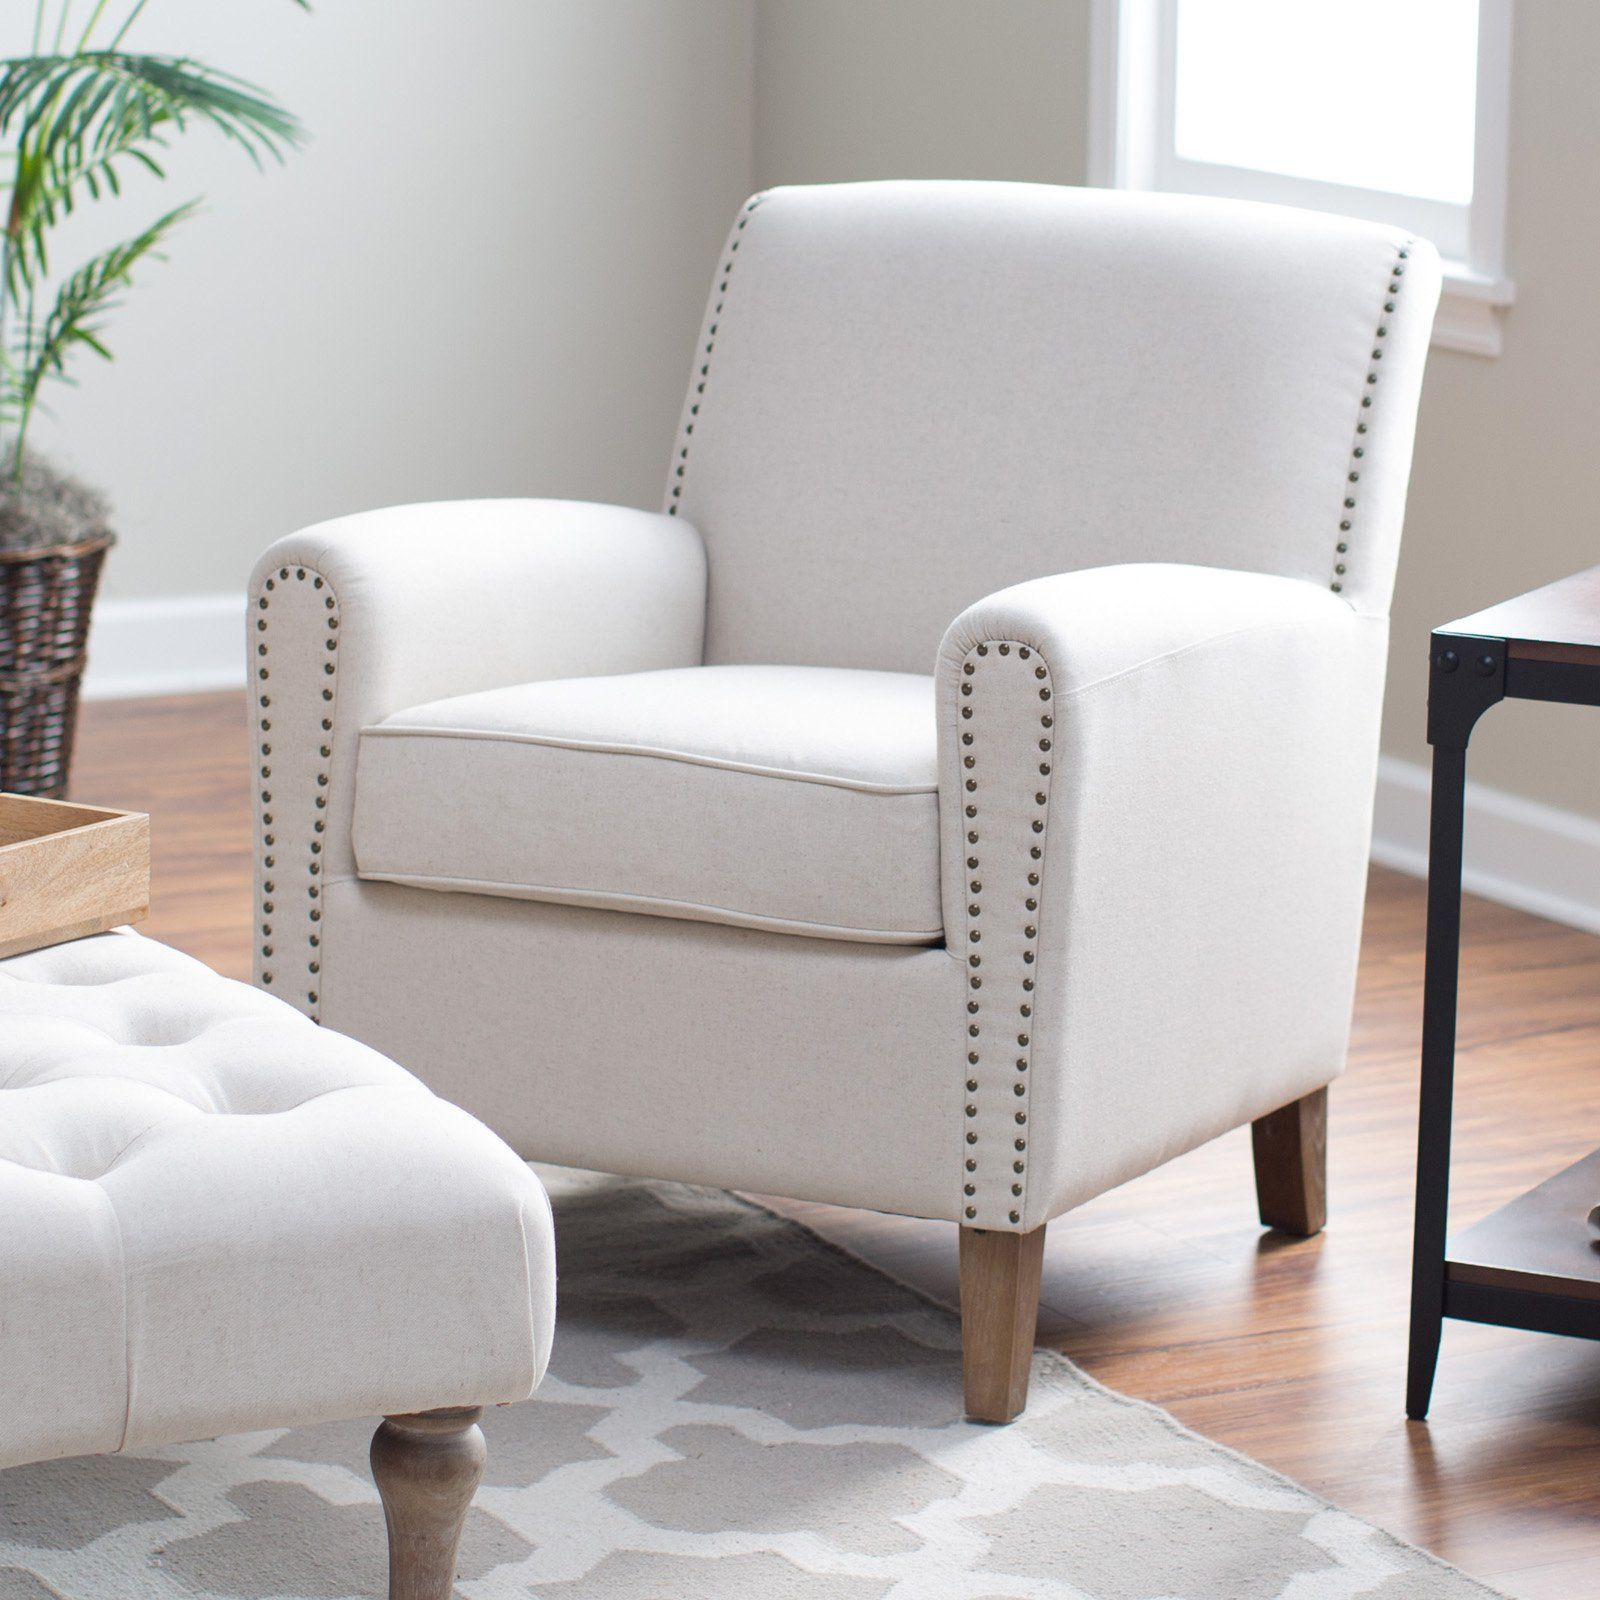 Belham Living Nala Arm Chair With Nailheads   Accent Chairs At Hayneedle